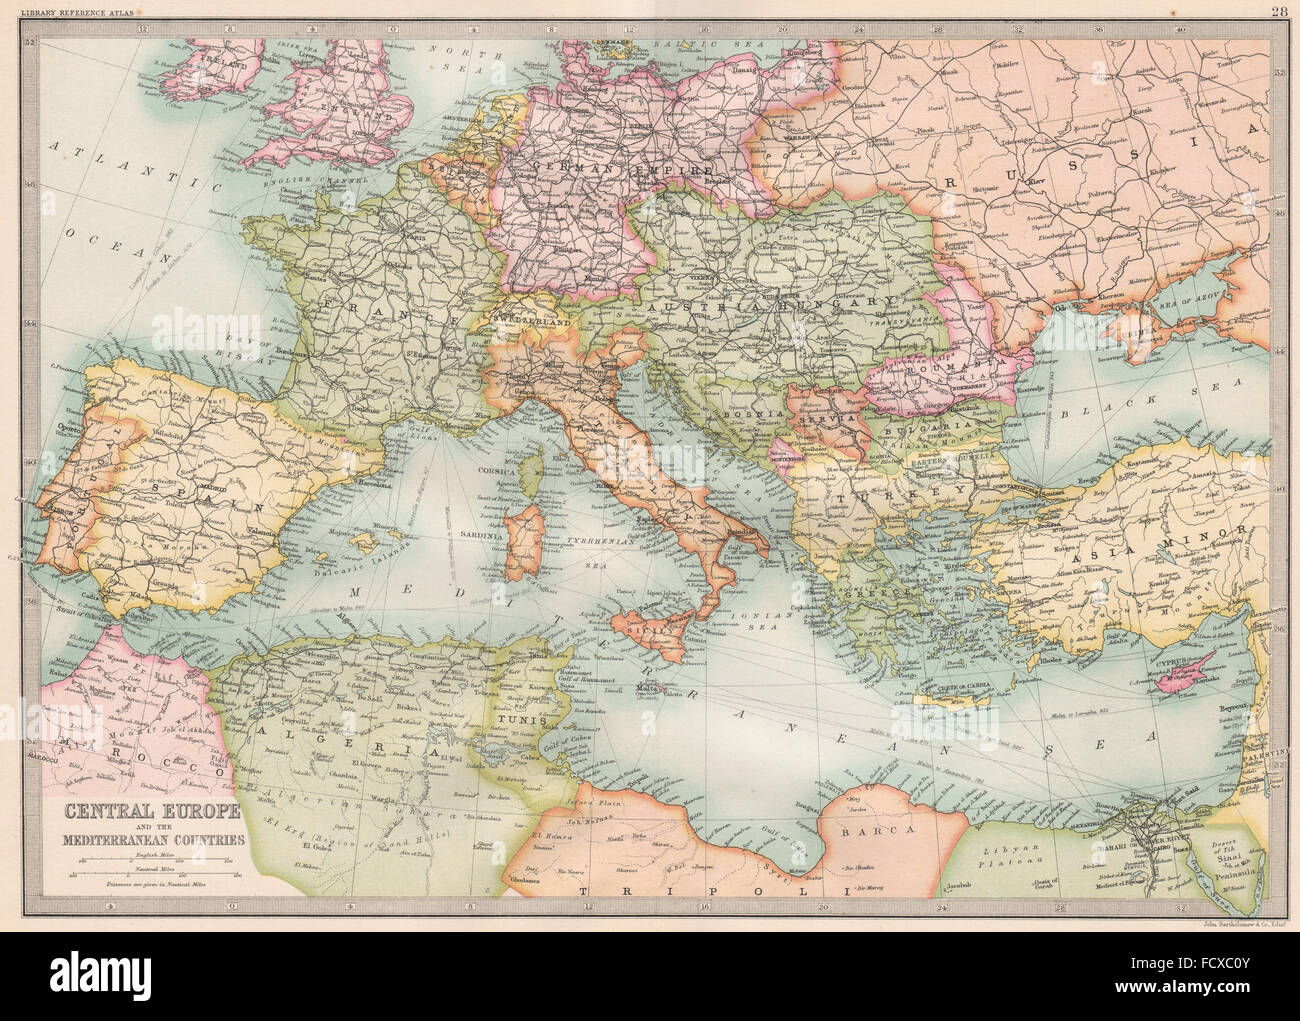 europe central europe and the mediterranean countries bartholomew 1890 map stock image